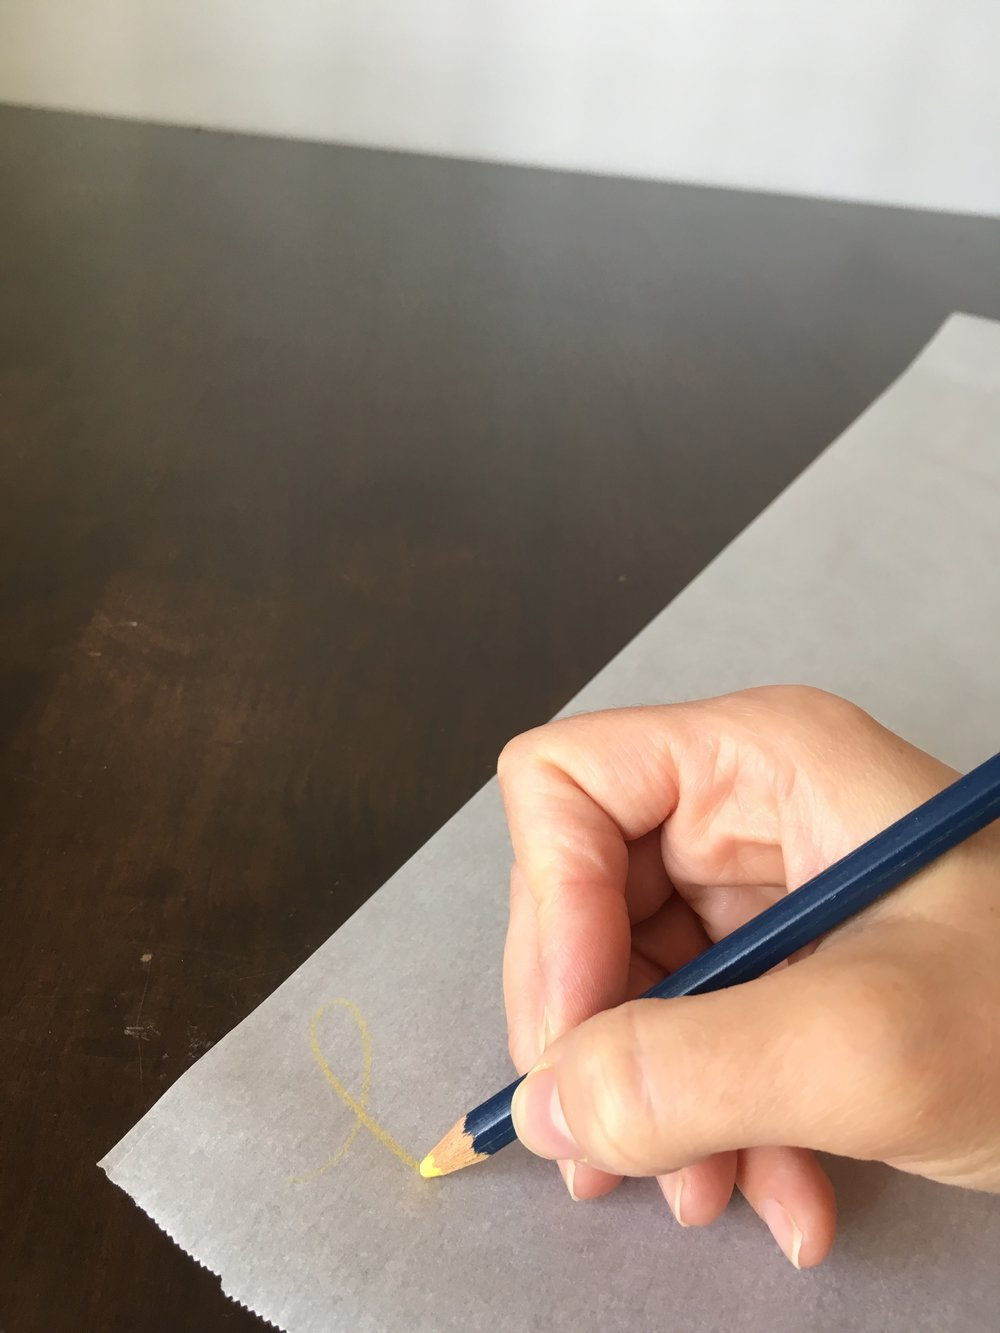 Step 3. - Before you get started, do a quick test to make sure your paper and material will work together. FYI- if you're using parchment paper, don't use markers...